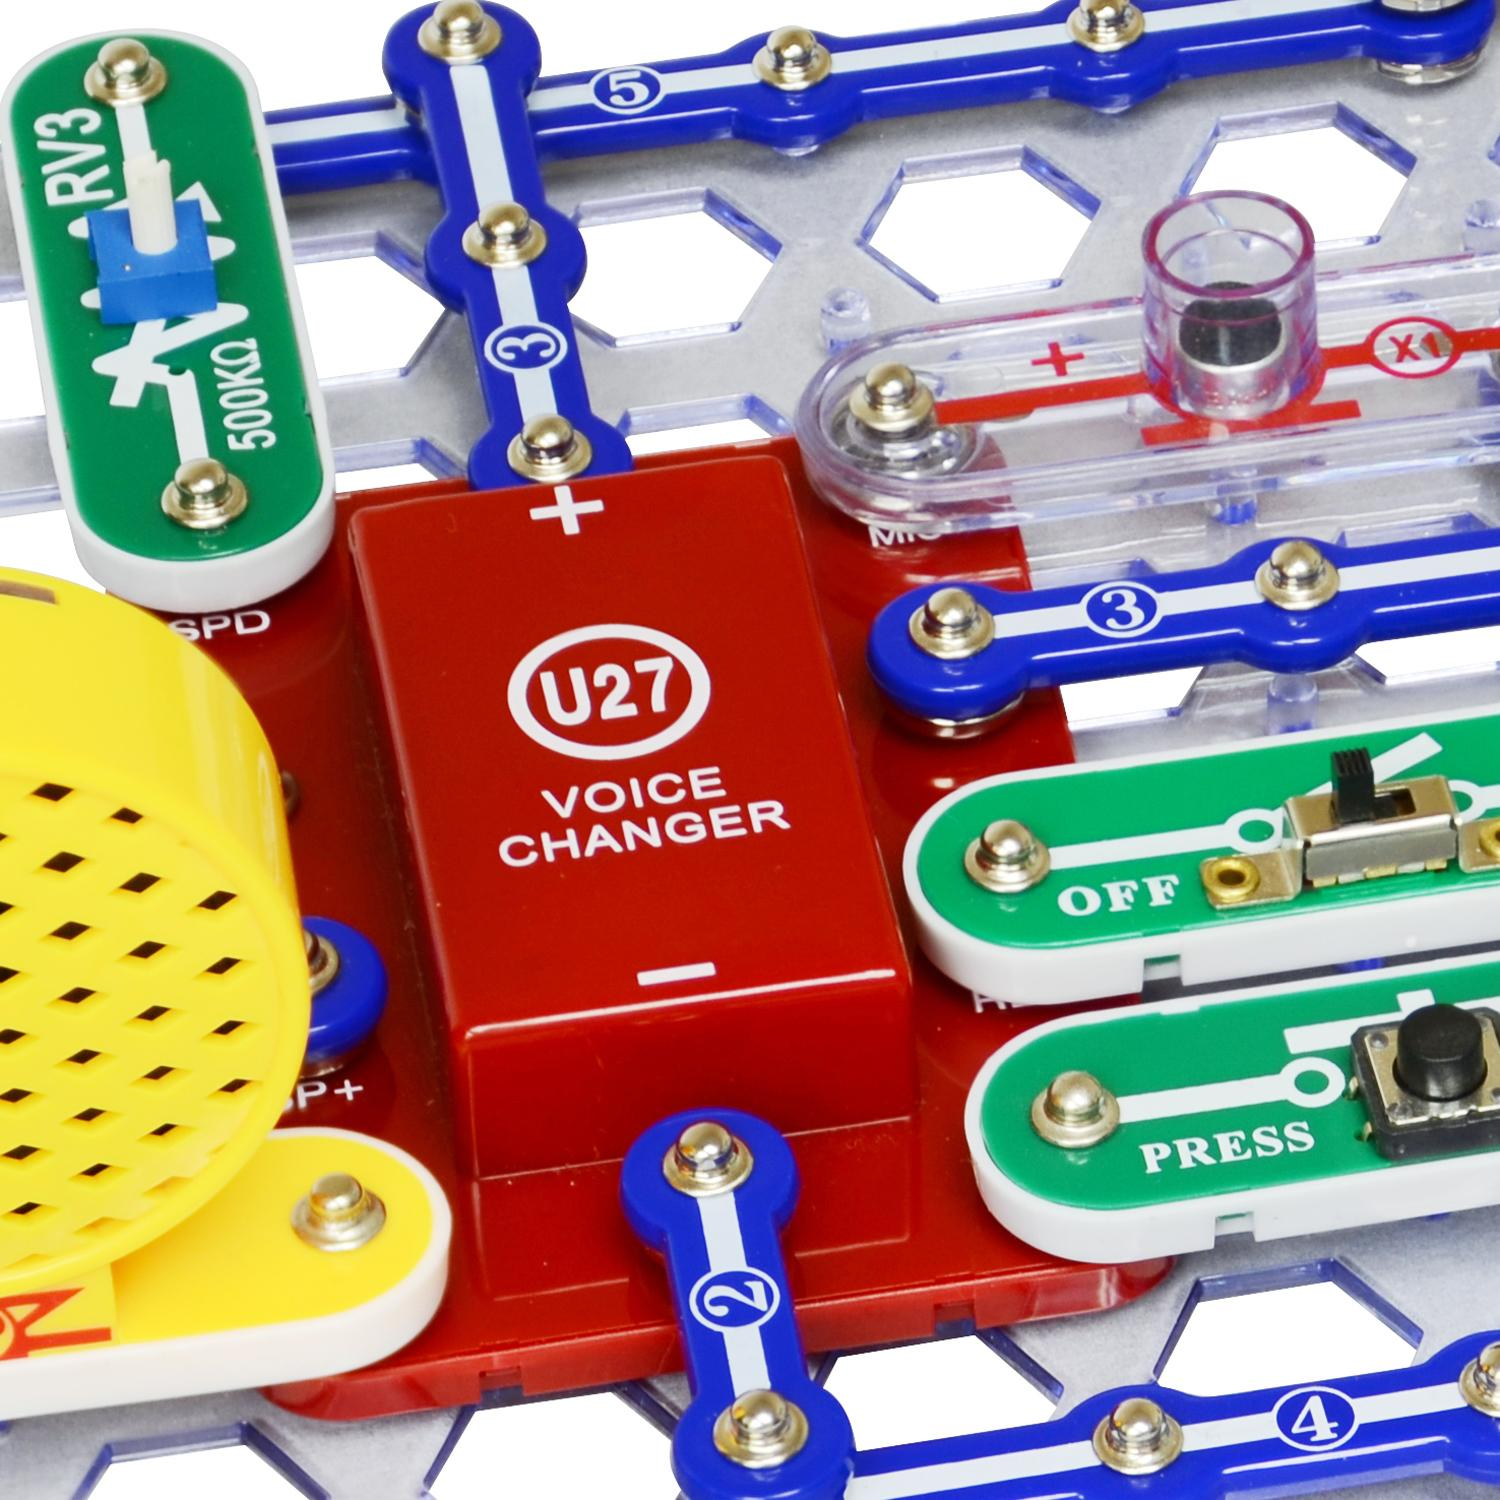 Buy Elenco Snap Circuits Sound Online At Low Prices In India Amazoncom Motion Electronics Discovery Kit Toys From The Manufacturer